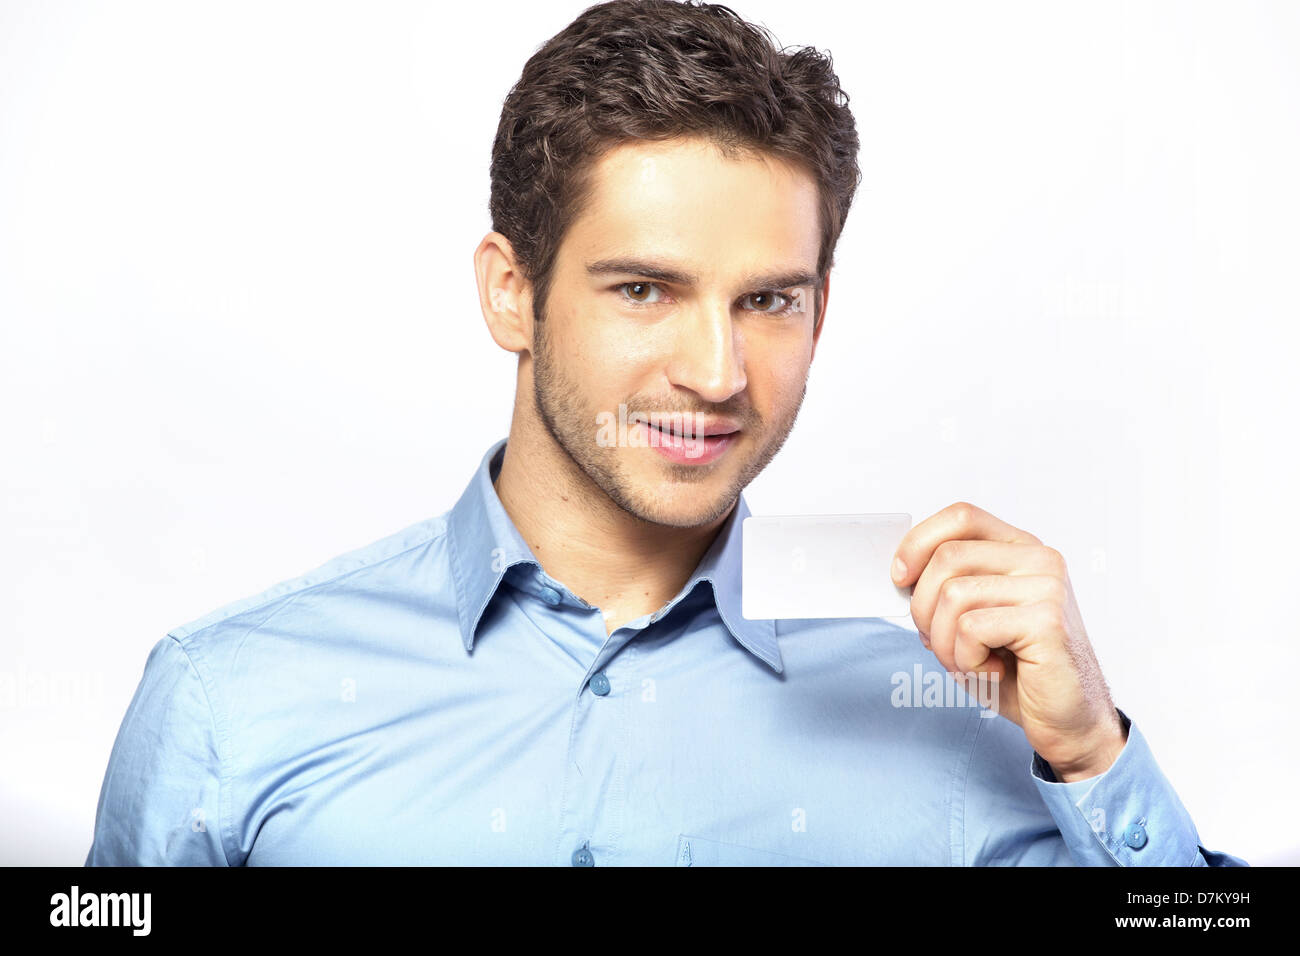 Good-looking guy holding business card Stock Photo: 56372221 - Alamy